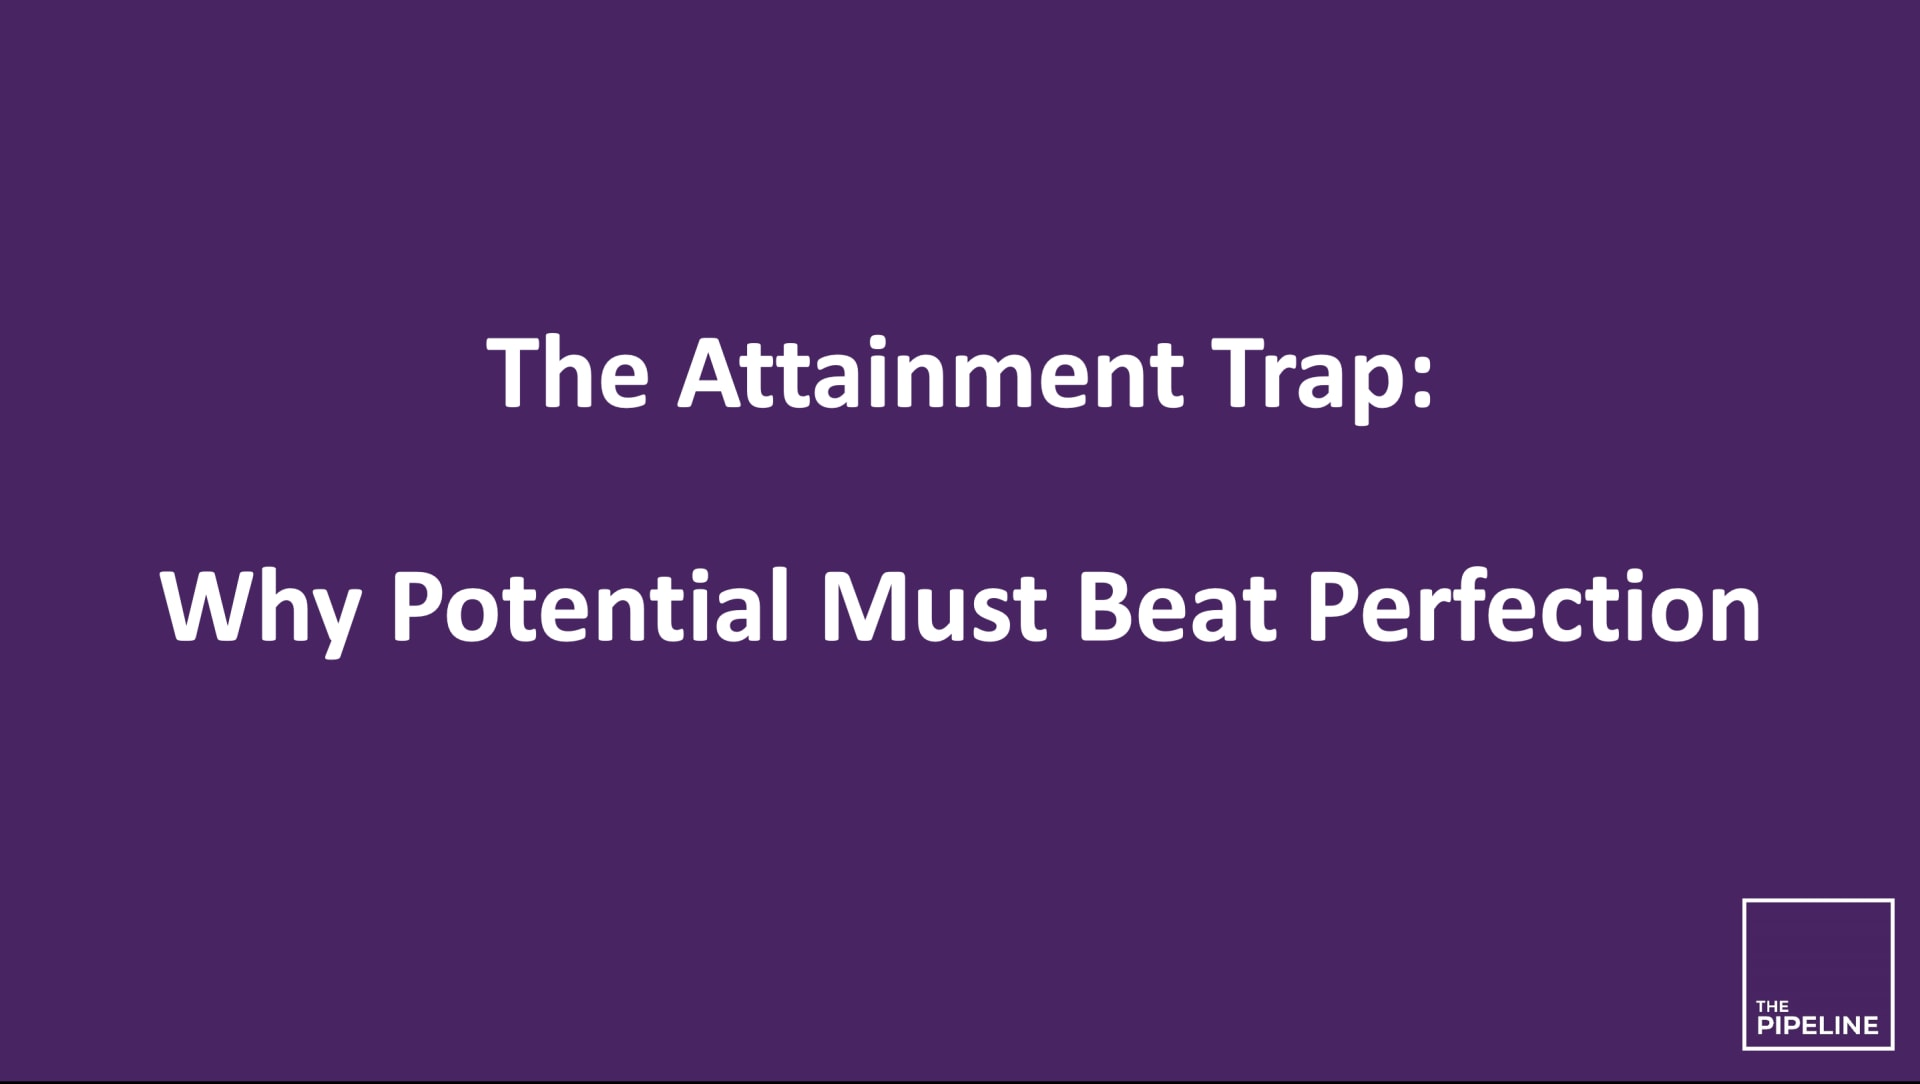 The Attainment Trap - Research Library